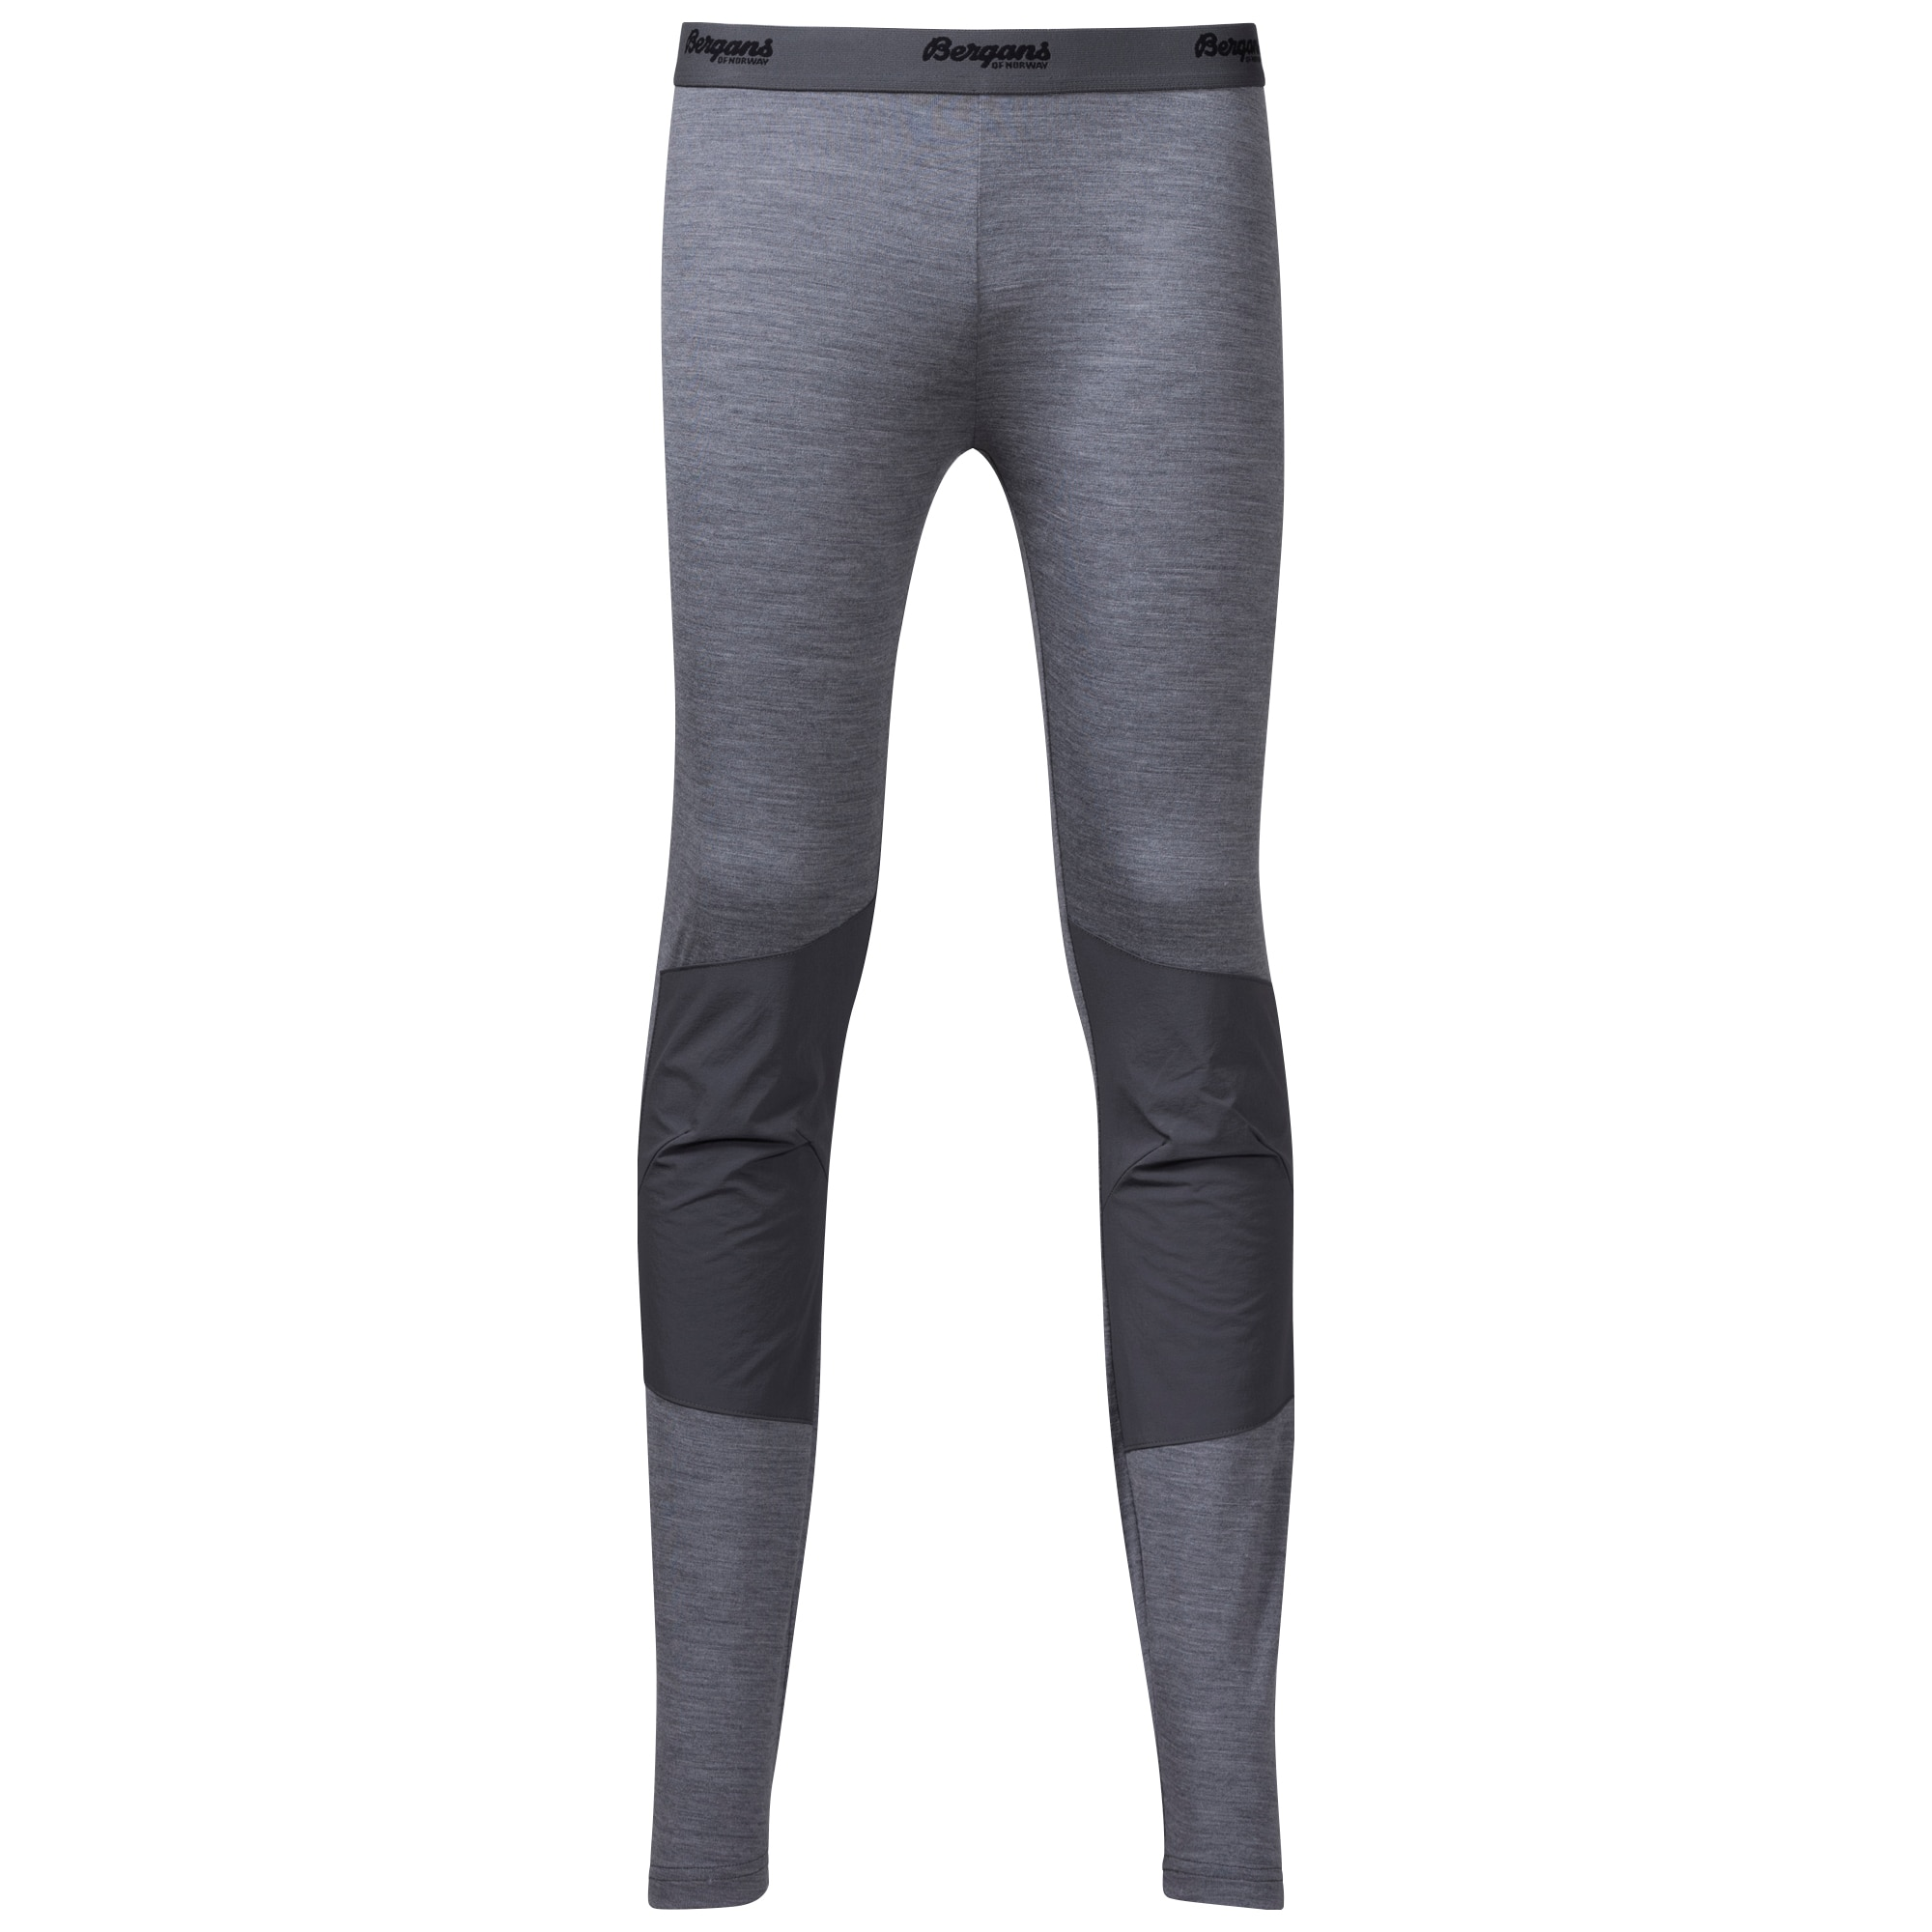 Myske Youth Tights